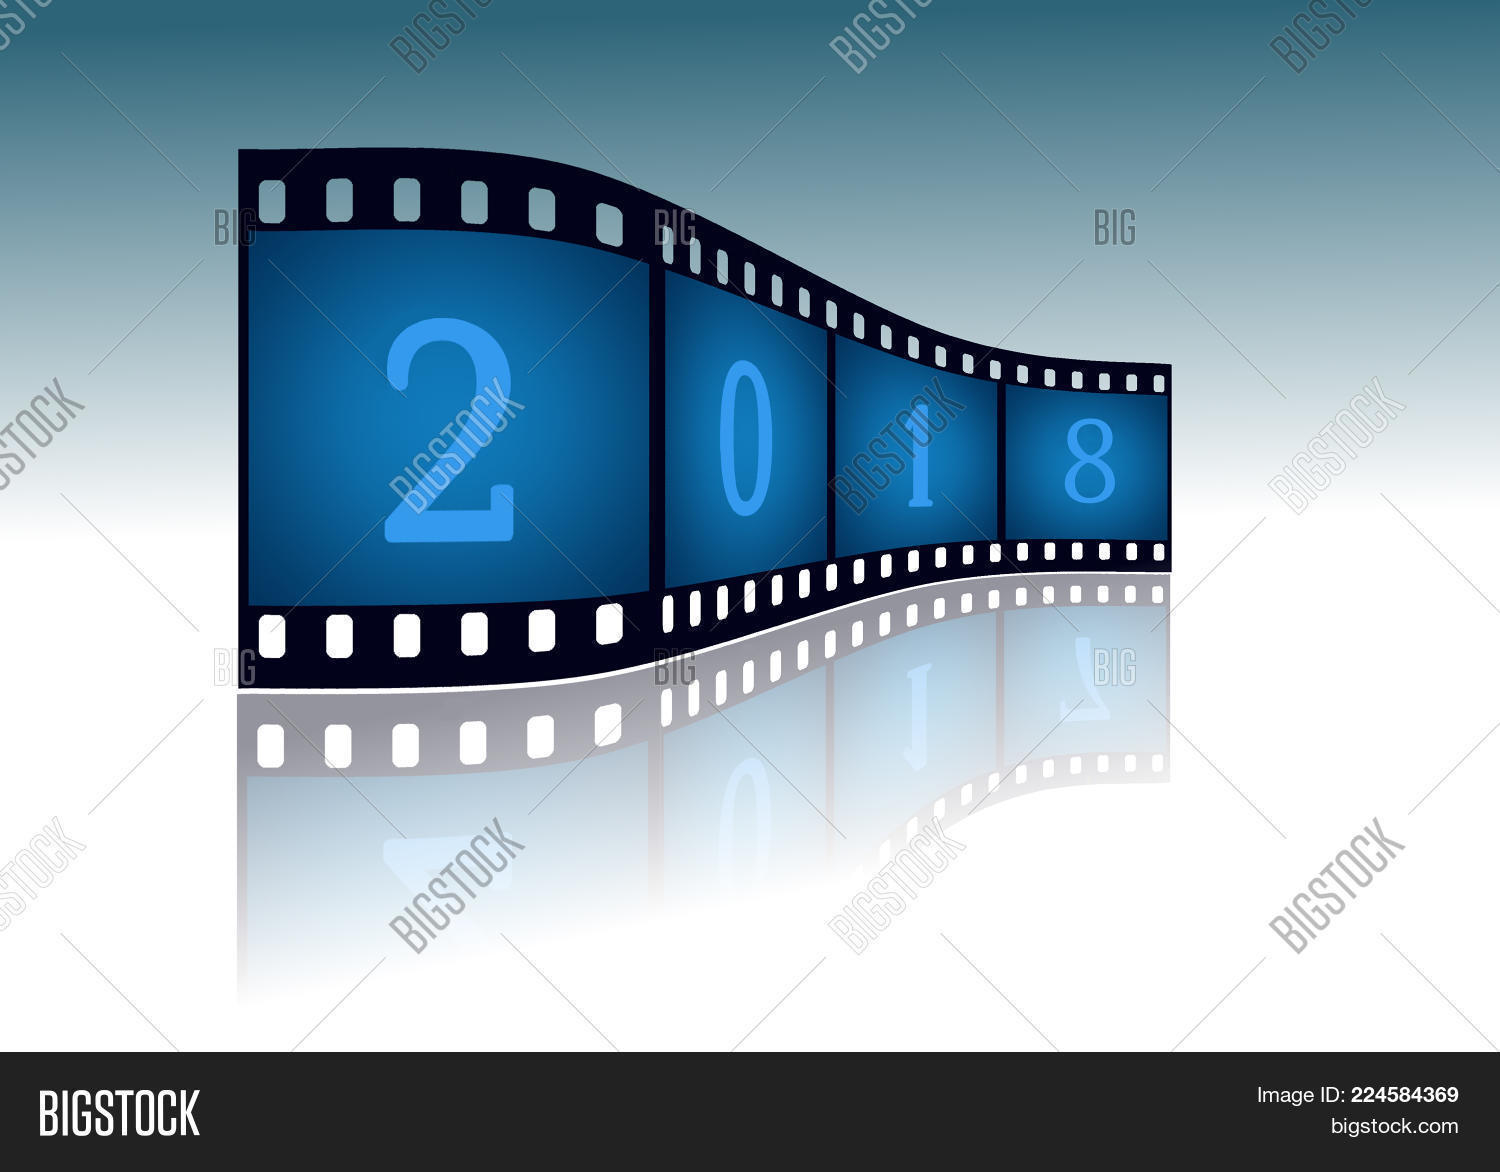 Film strip with date PowerPoint Template - Film strip with date ...